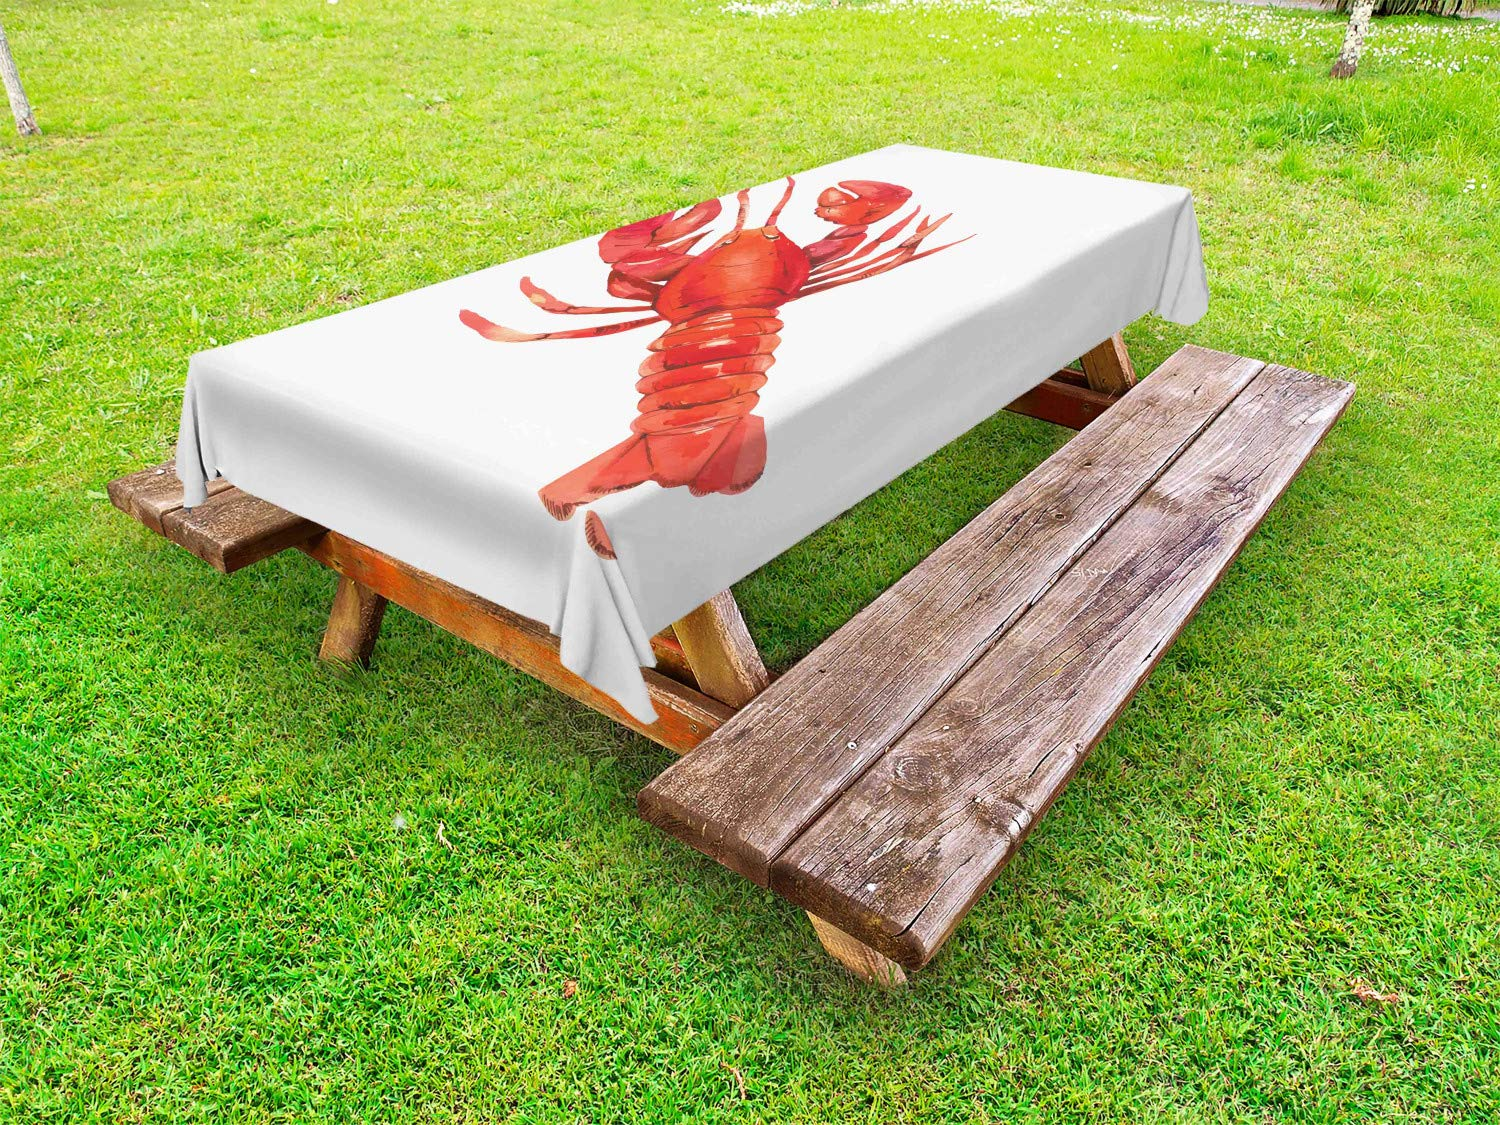 Ambesonne Lobster Outdoor Tablecloth, Watercolor Effect Crustacean Image Mediterranean Sea Food Cuisine Concept, Decorative Washable Picnic Table Cloth, 58'' X 120'', White and Vermilion